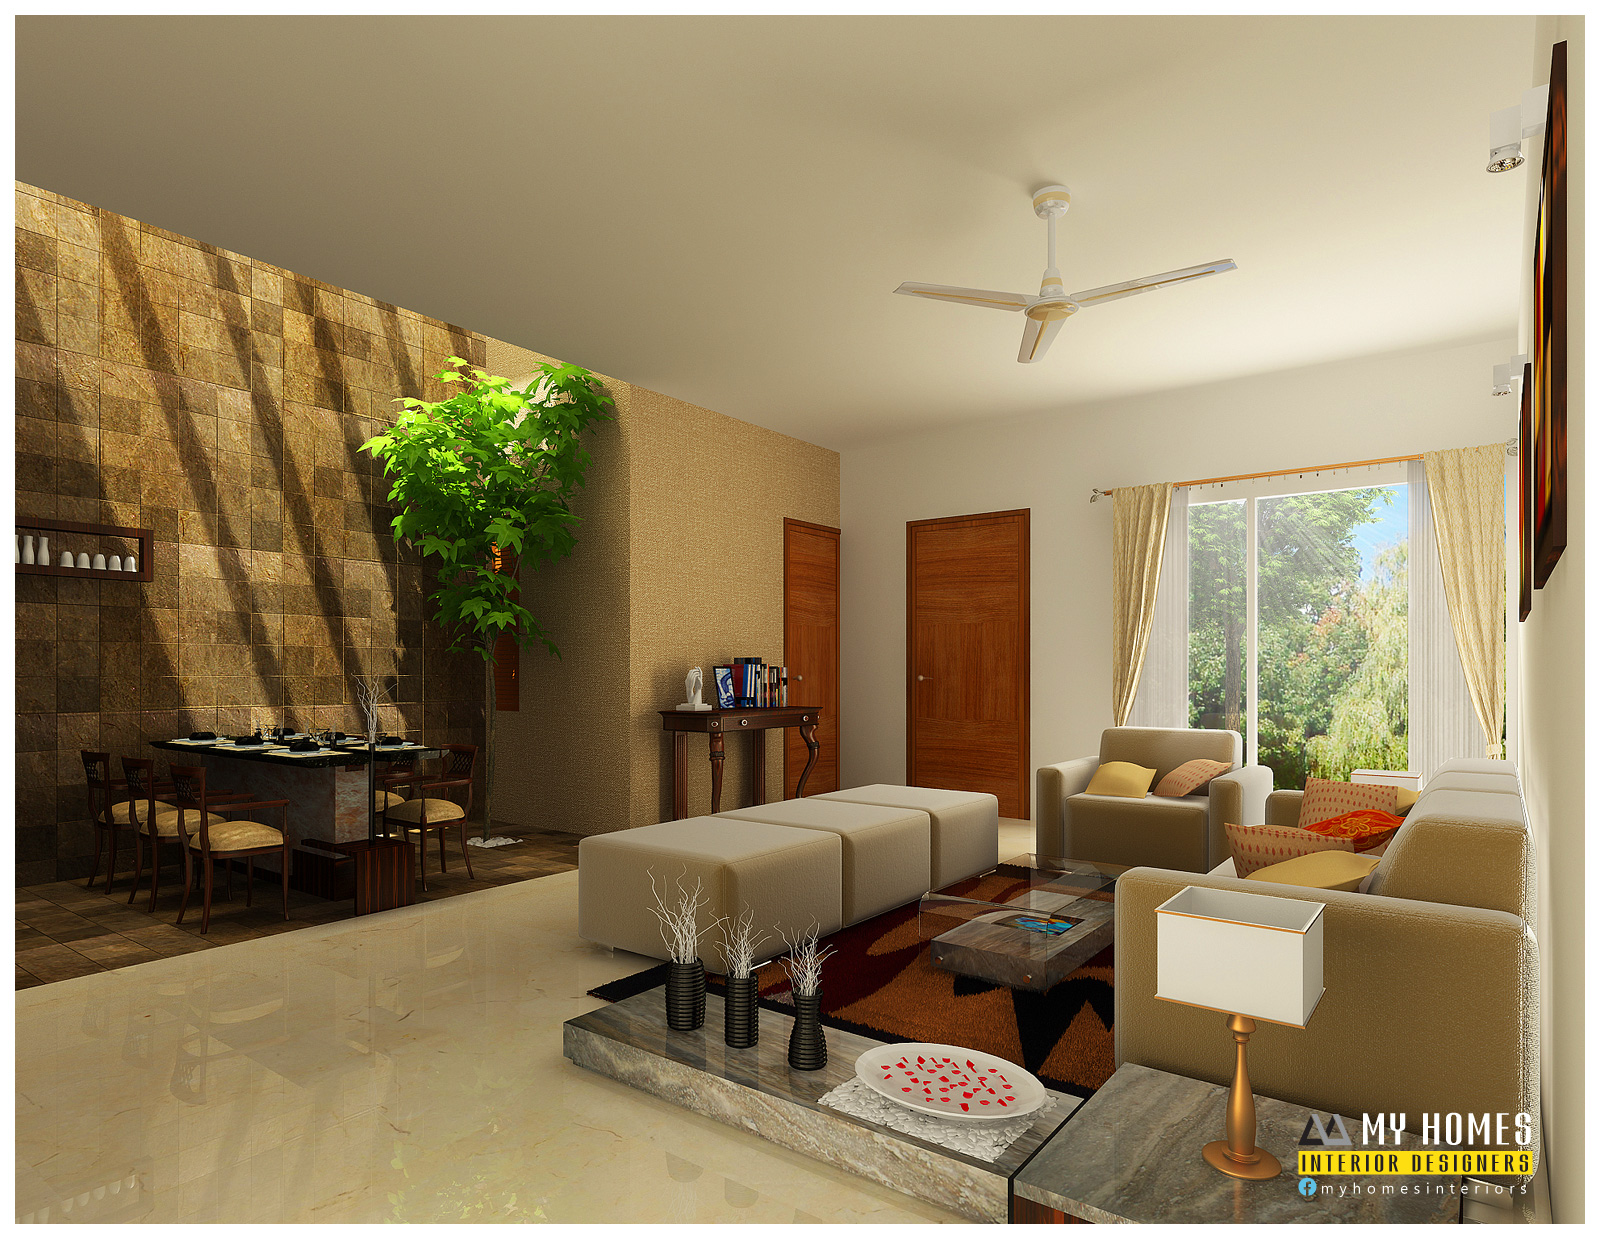 kerala interior design ideas from designing company thrissur at home interior design good at home interior design hd